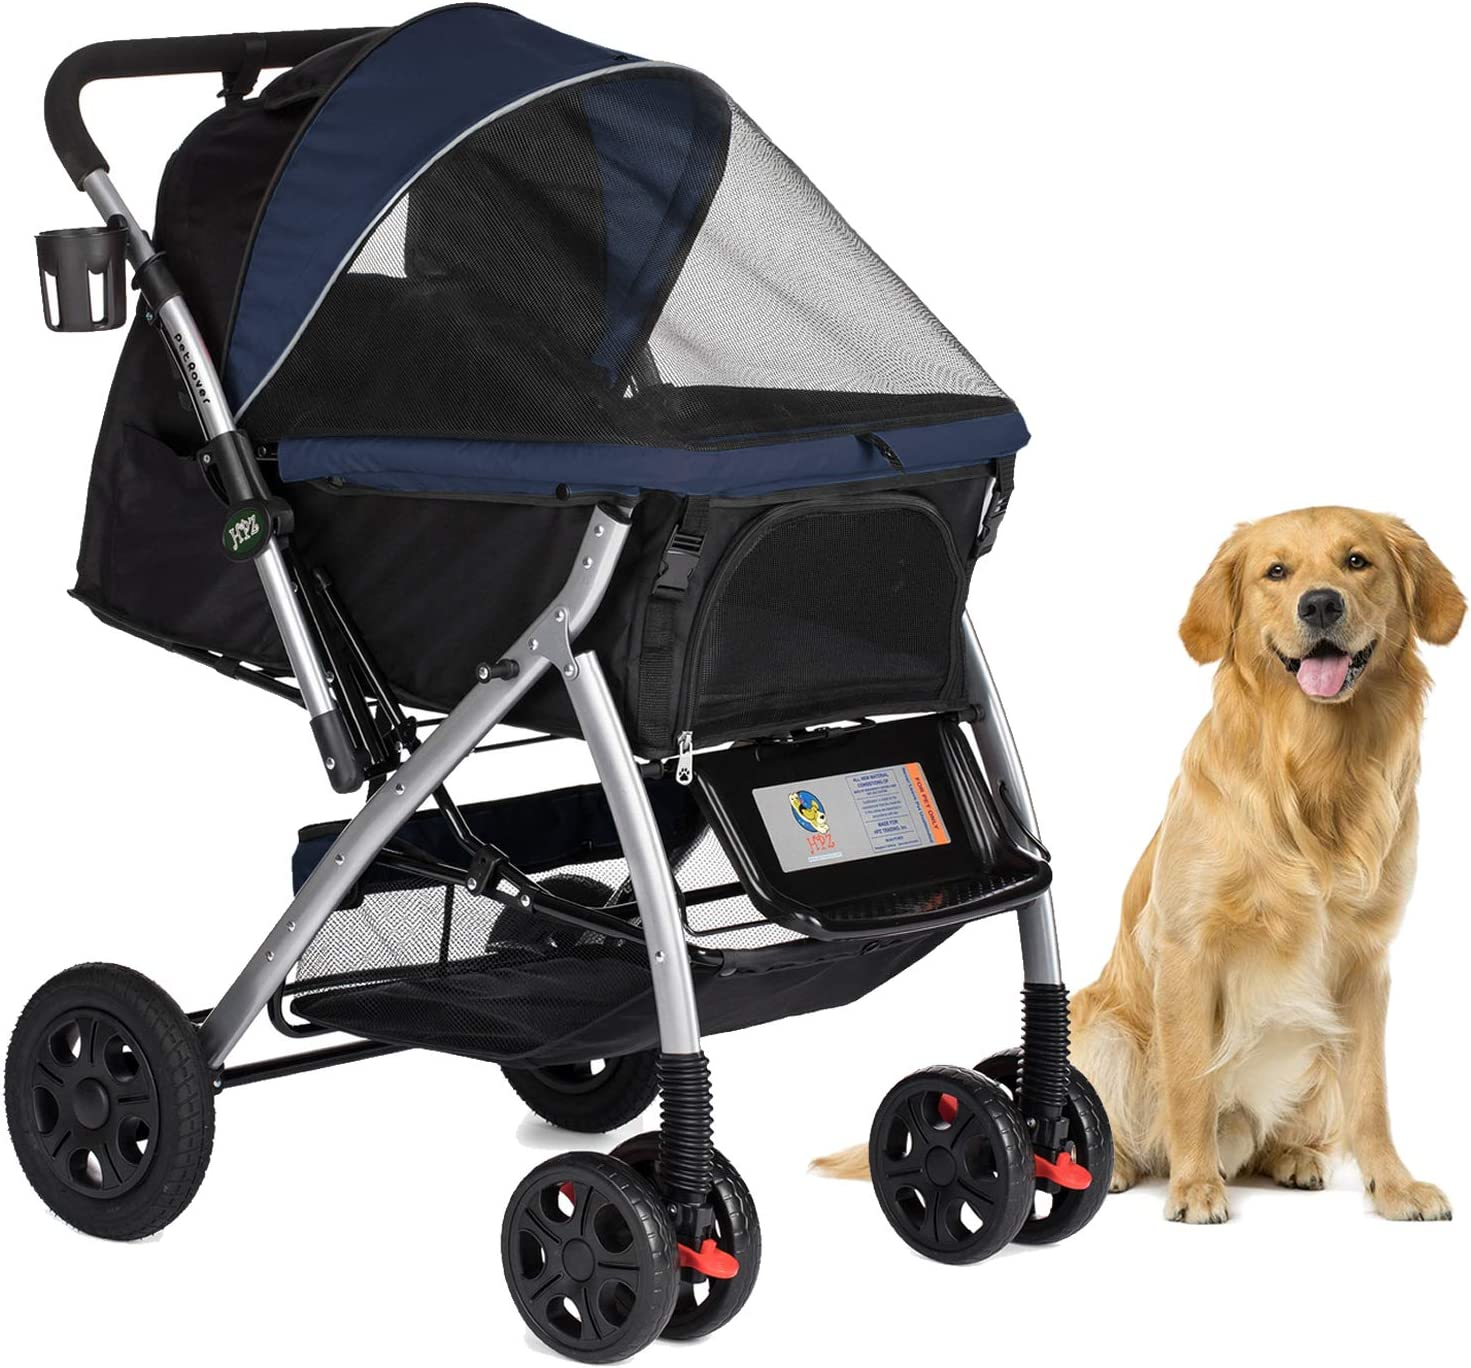 HPZ Pet Rover Premium Heavy Duty Dog Cat Pet Stroller Travel Carriage with Convertible Compartment Zipperless Entry Reversible Handlebar Pump-Free Rubber Tires for Small, Medium, Large Pets